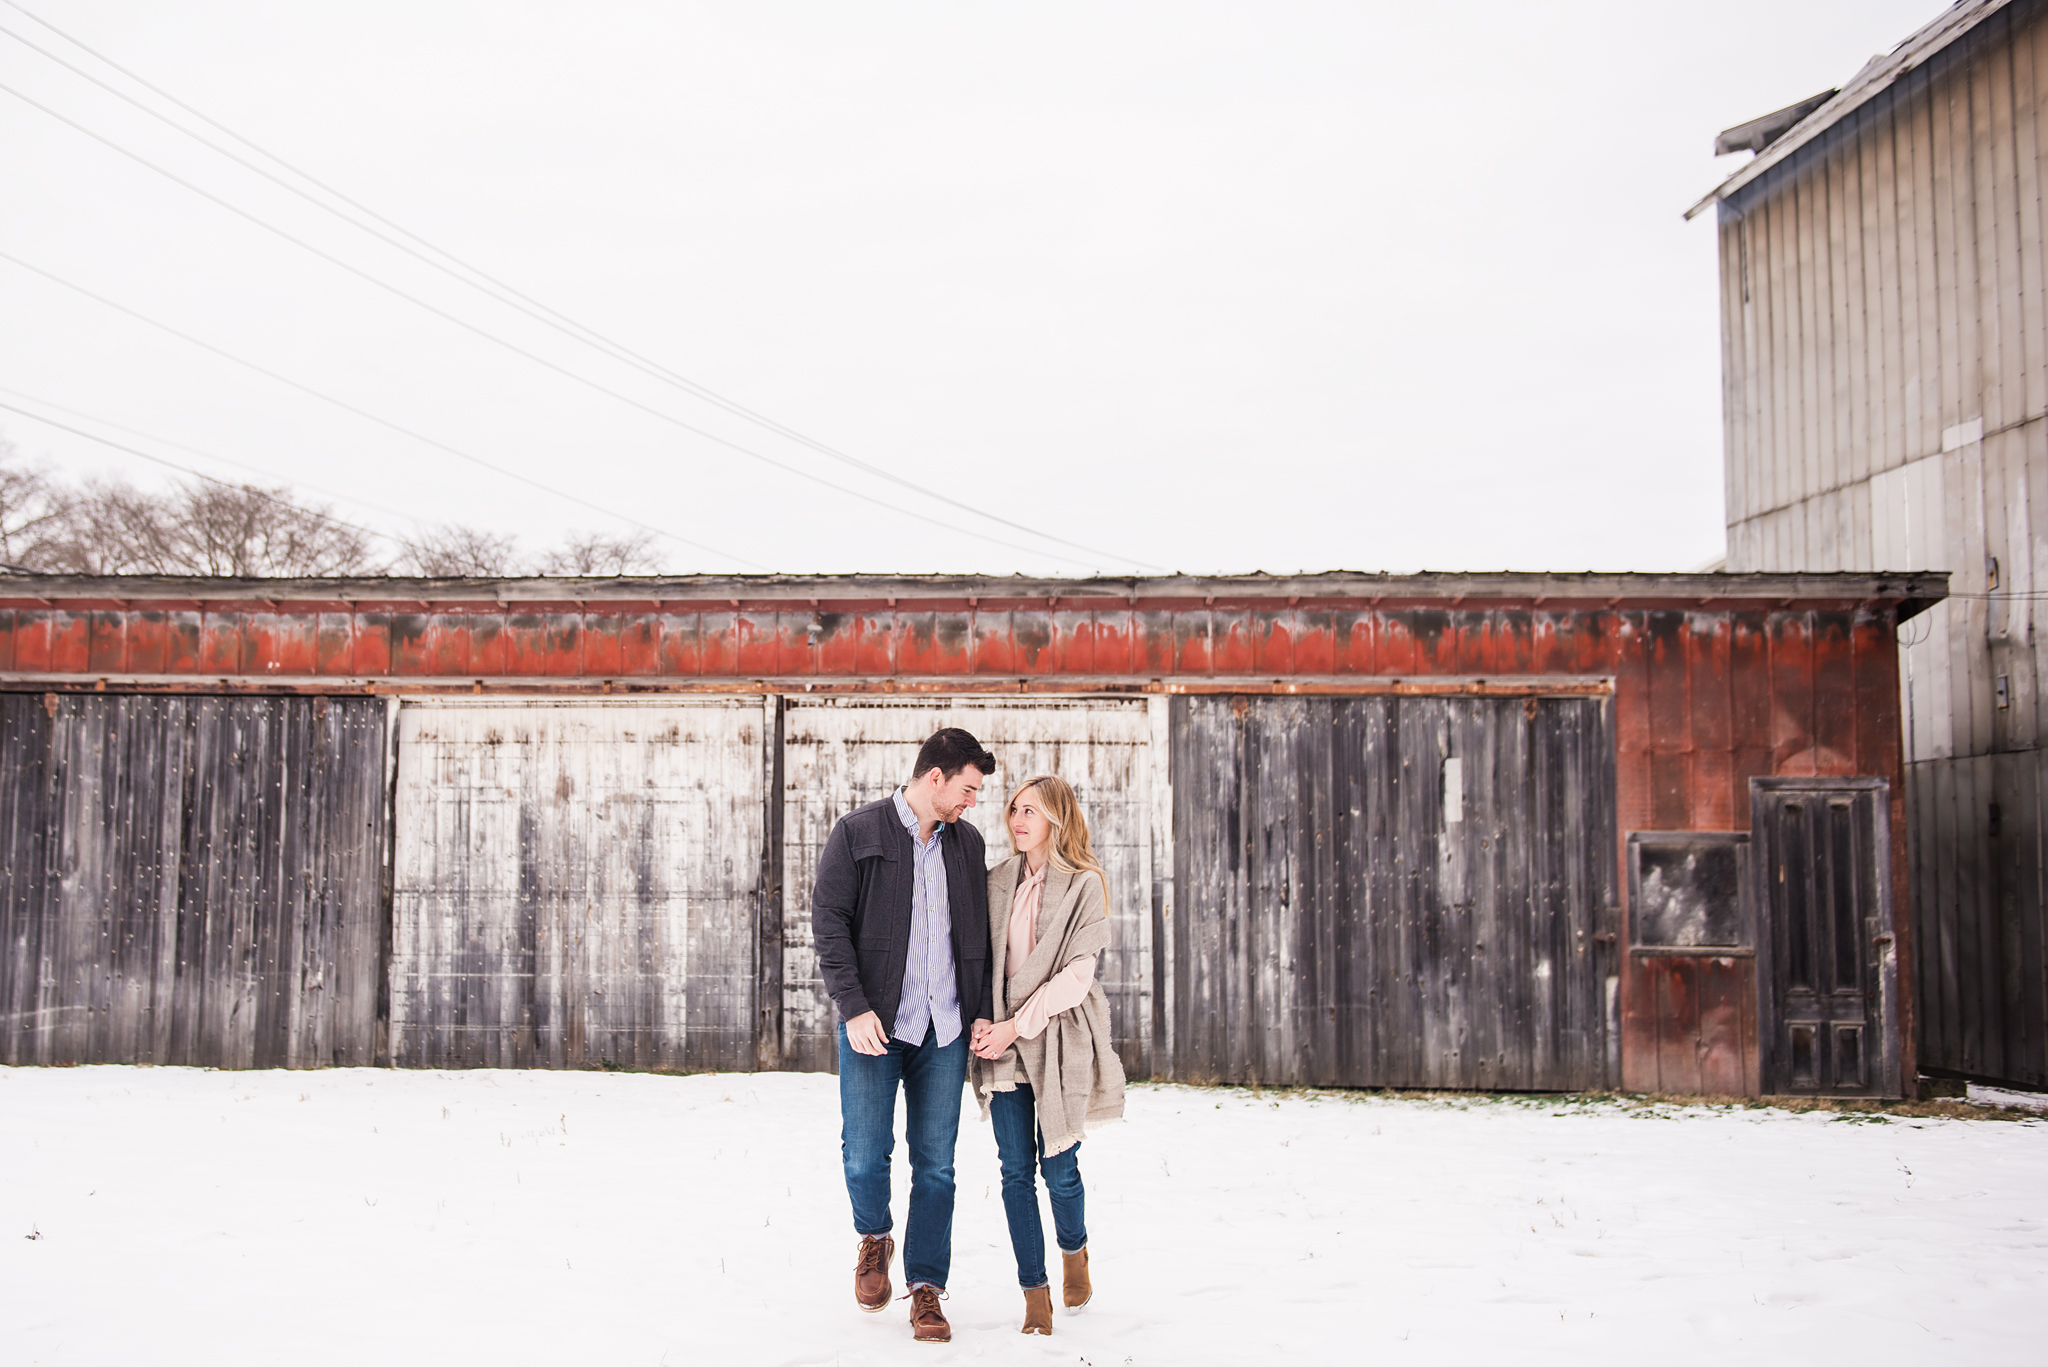 Schoen_Place_Rochester_Engagement_Session_JILL_STUDIO_Rochester_NY_Photographer_DSC_1188.jpg